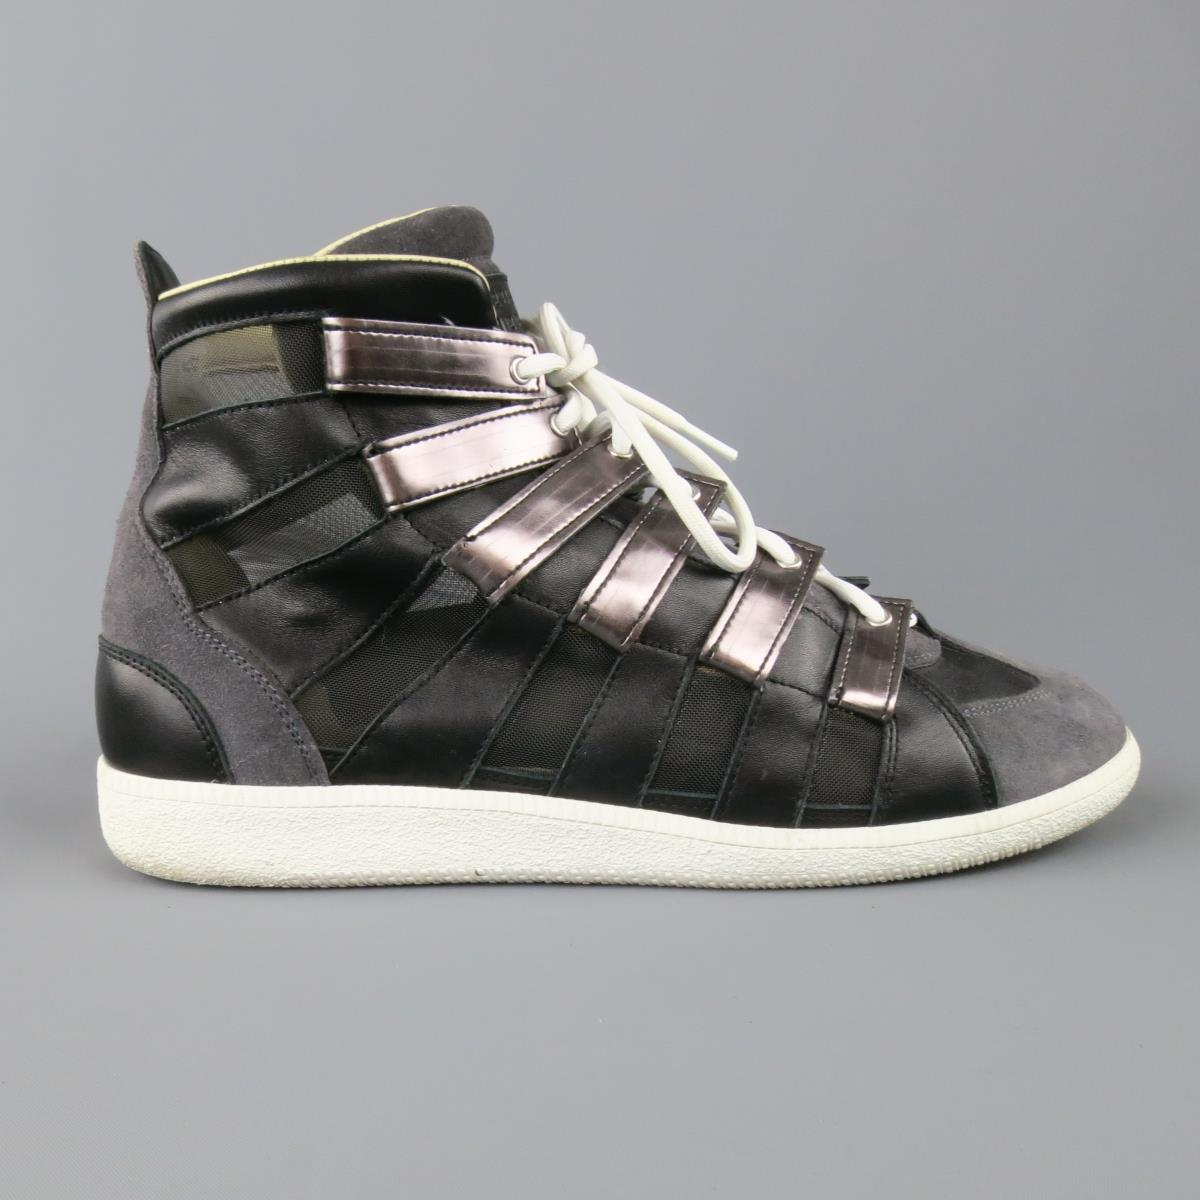 ff41a0b50e94a Details about MAISON MARTIN MARGIELA Size 12 Black   Grey Mesh Stripe High  Top Sneakers